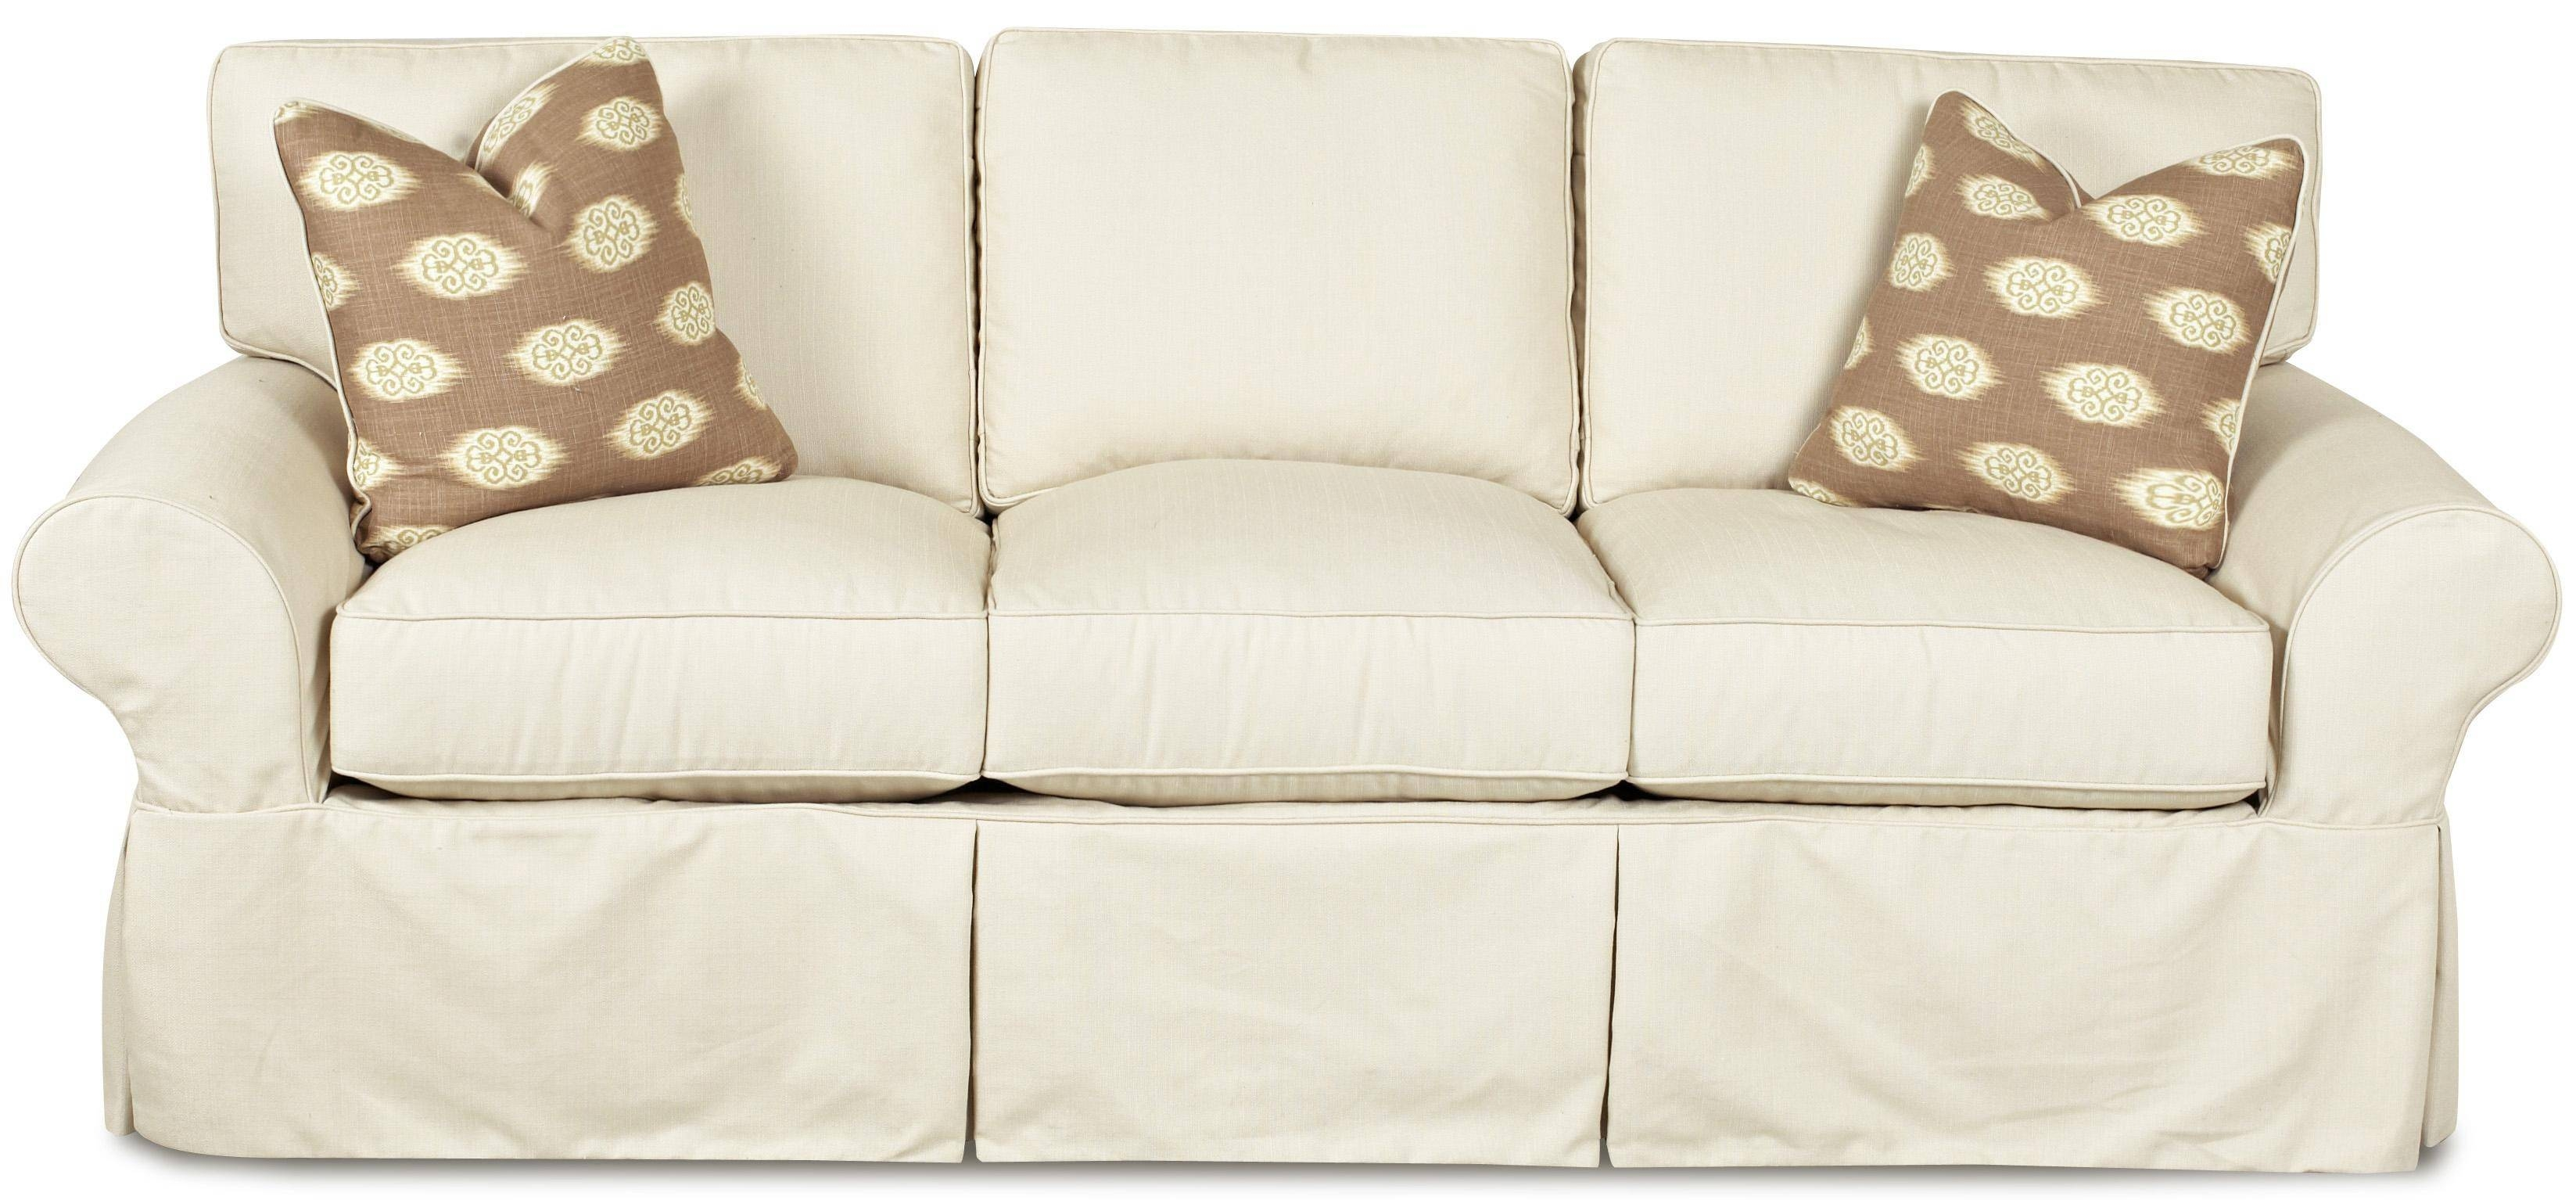 Klaussner Patterns Slipcovered Sofa With Rolled Arms And Tailored With Regard To Slipcovers Sofas (View 17 of 30)